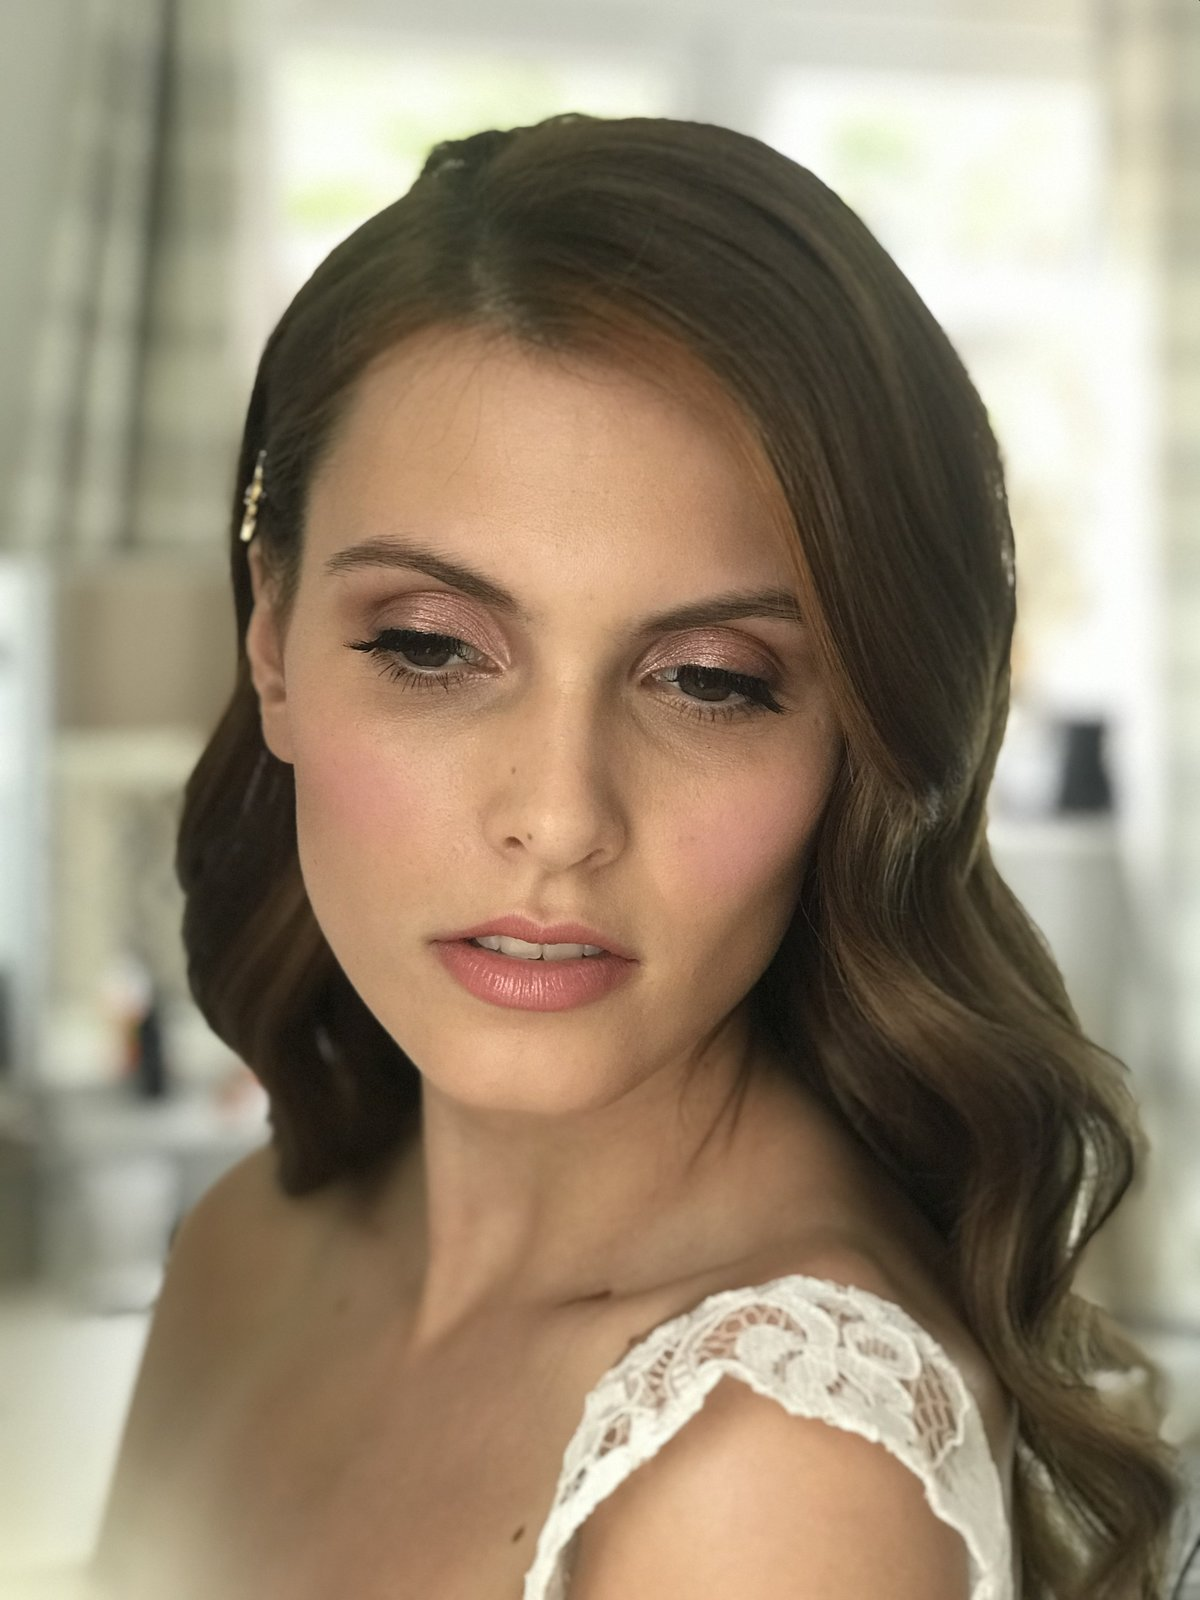 jessca rose makeup artist cotswolds